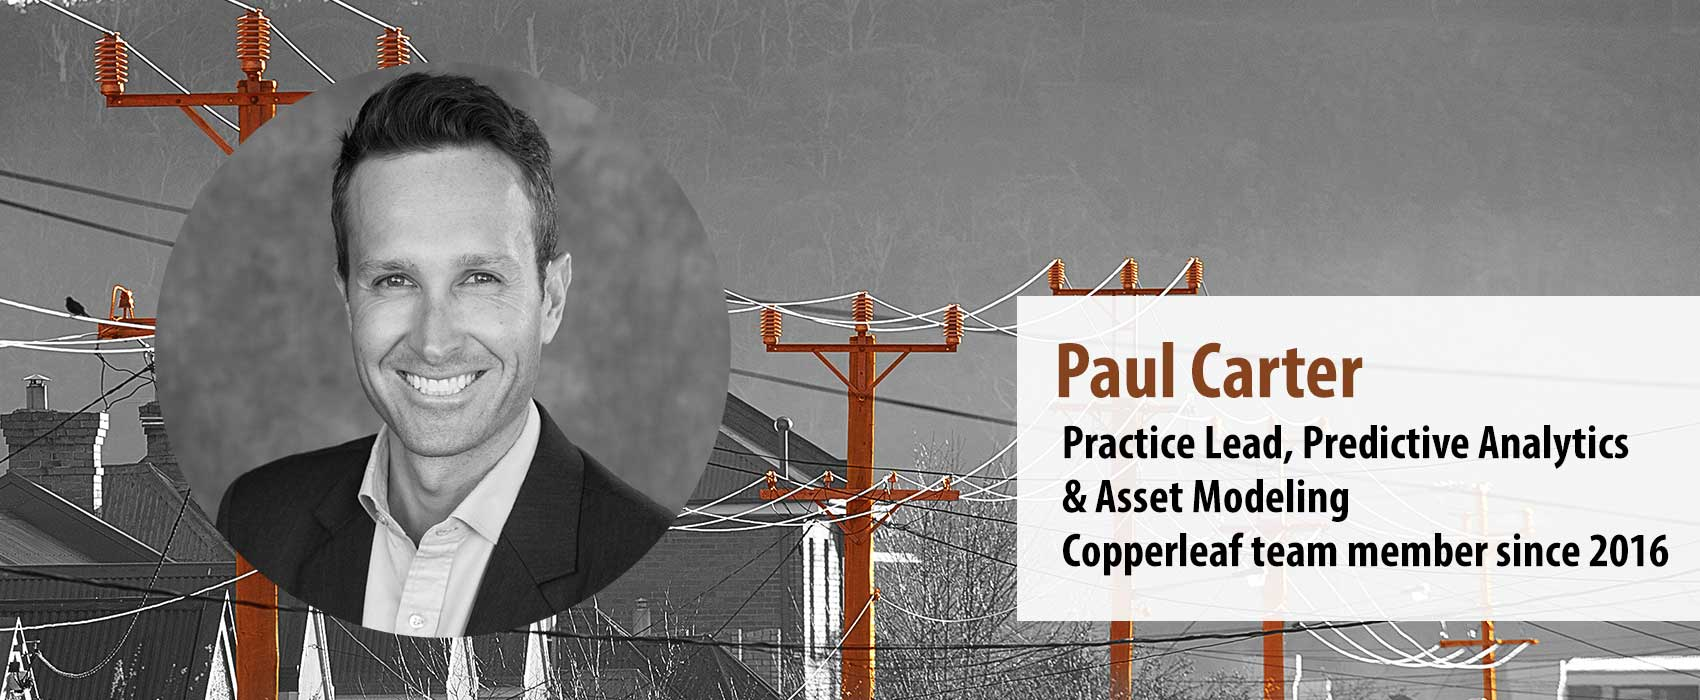 Image for Employee Feature: Q&A with Paul Carter, Practice Lead, Predictive Analytics & Asset Modeling